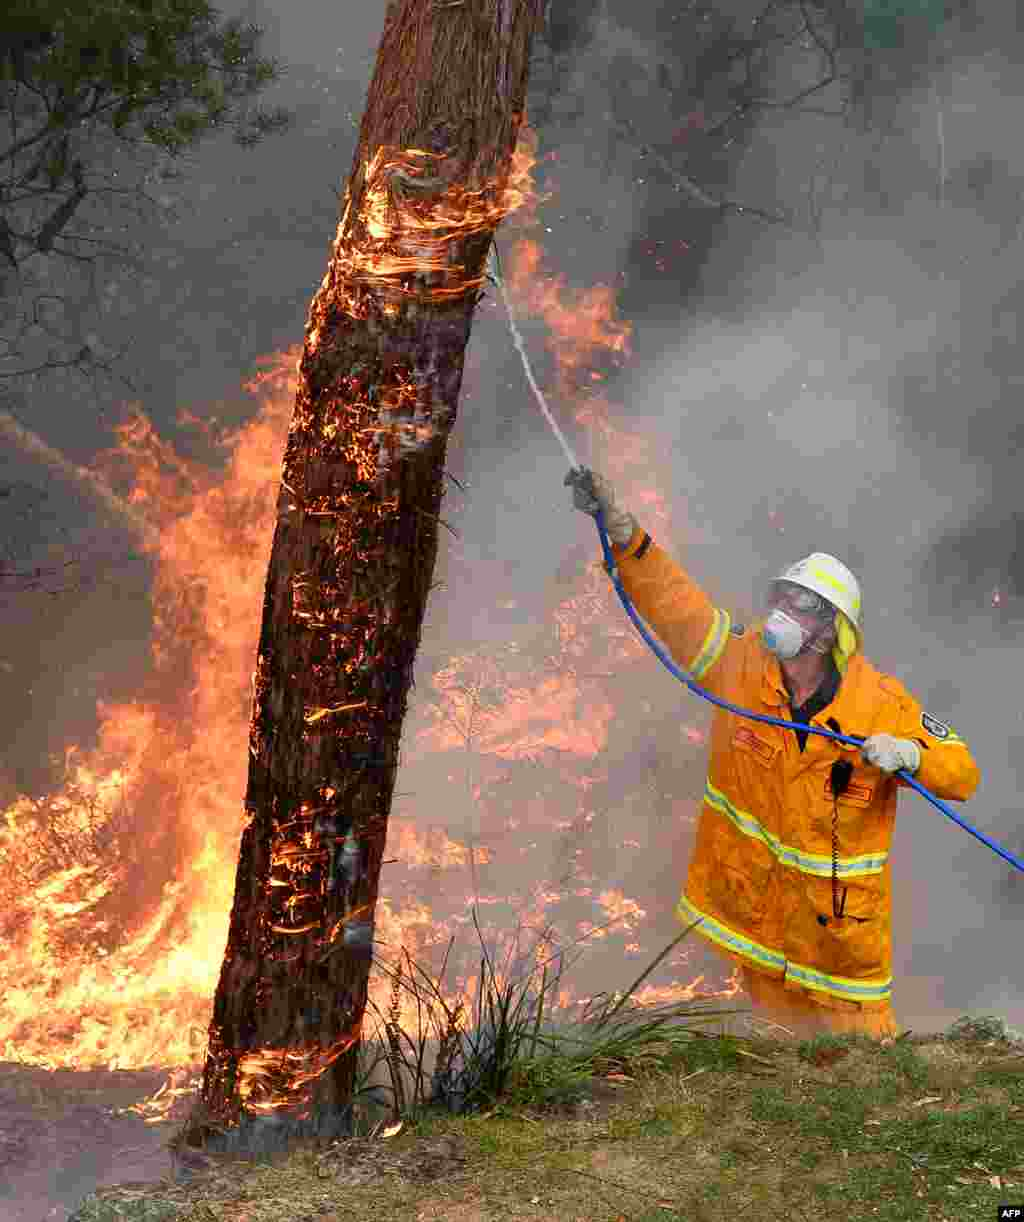 A firefighter contains fires from a resident's backyard at Faulconbridge in the Blue Mountains, Australia.